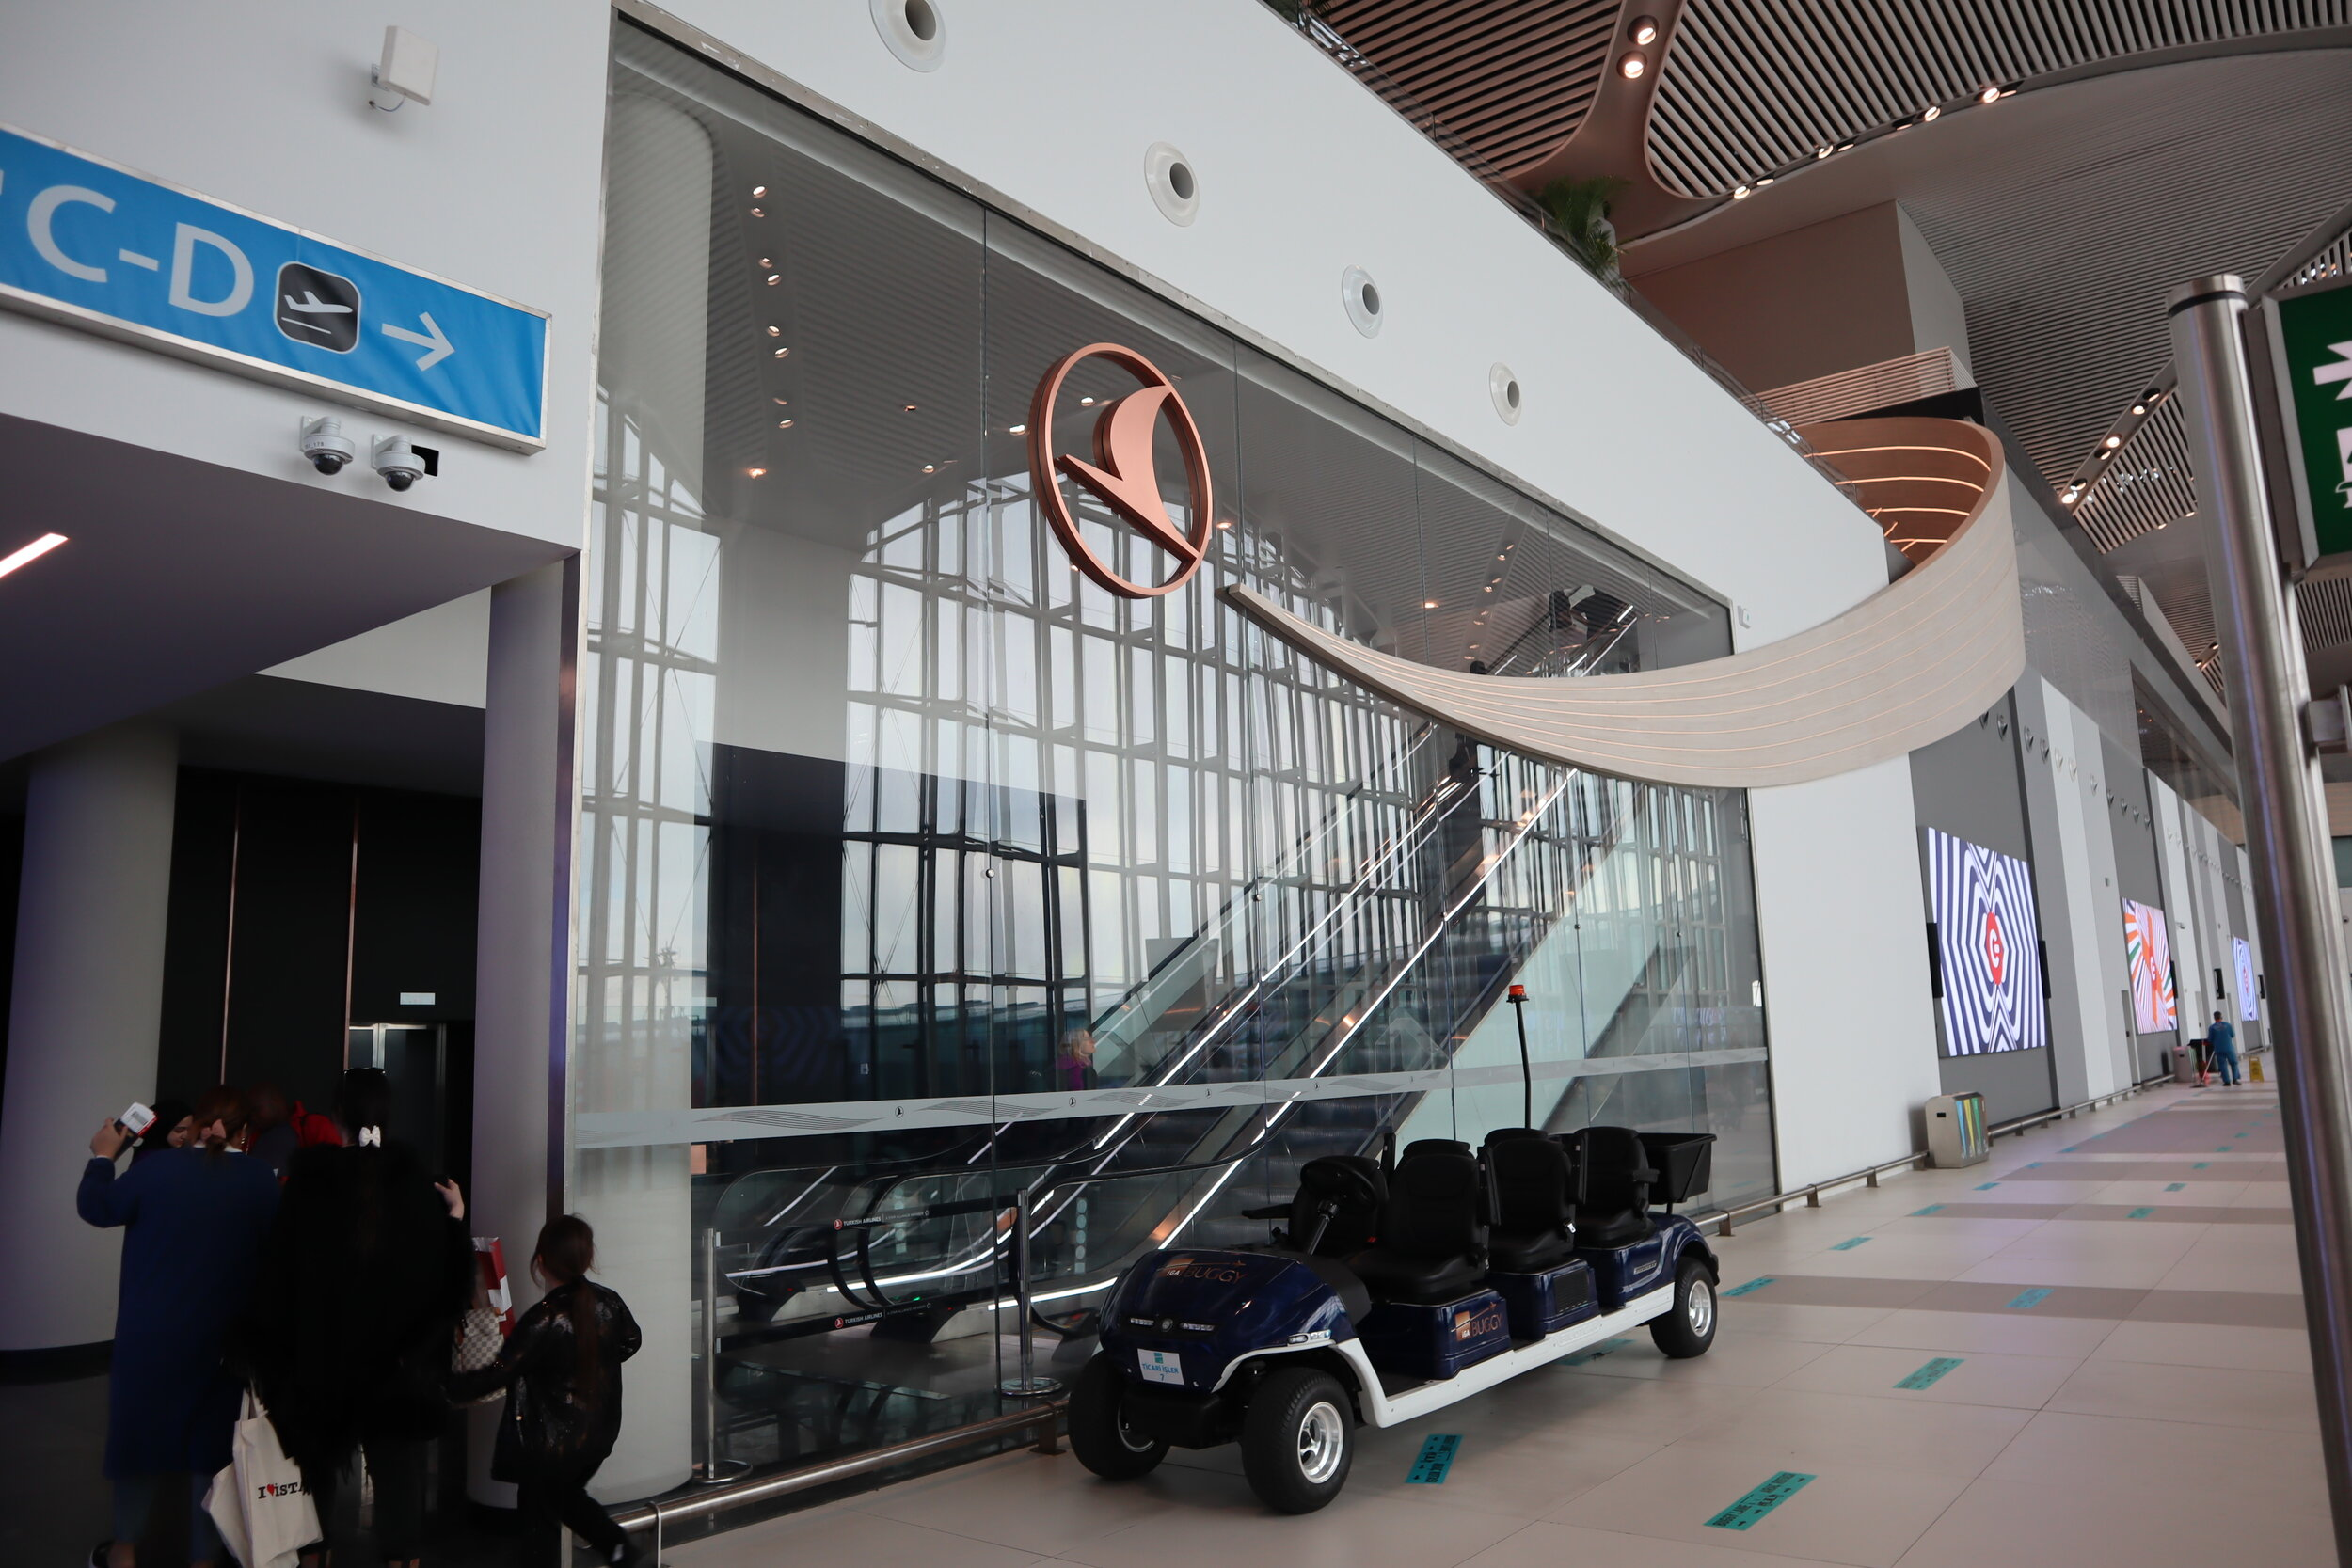 Turkish Airlines Business Lounge Istanbul – Entrance